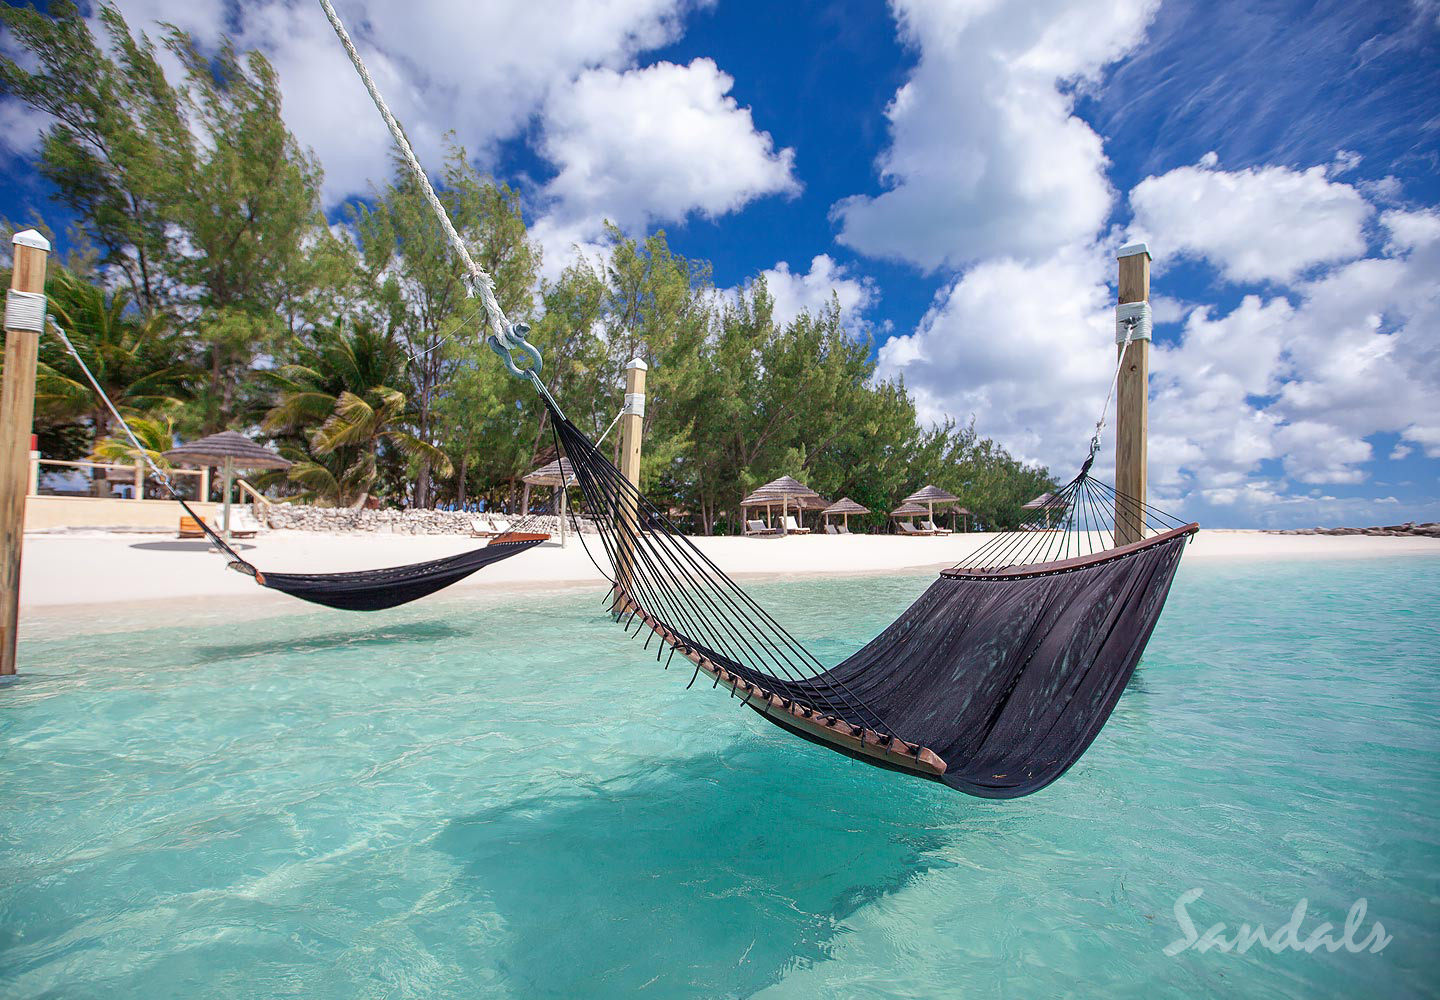 Travel Agency All-Inclusive Resort Sandals Royal Bahamian 129